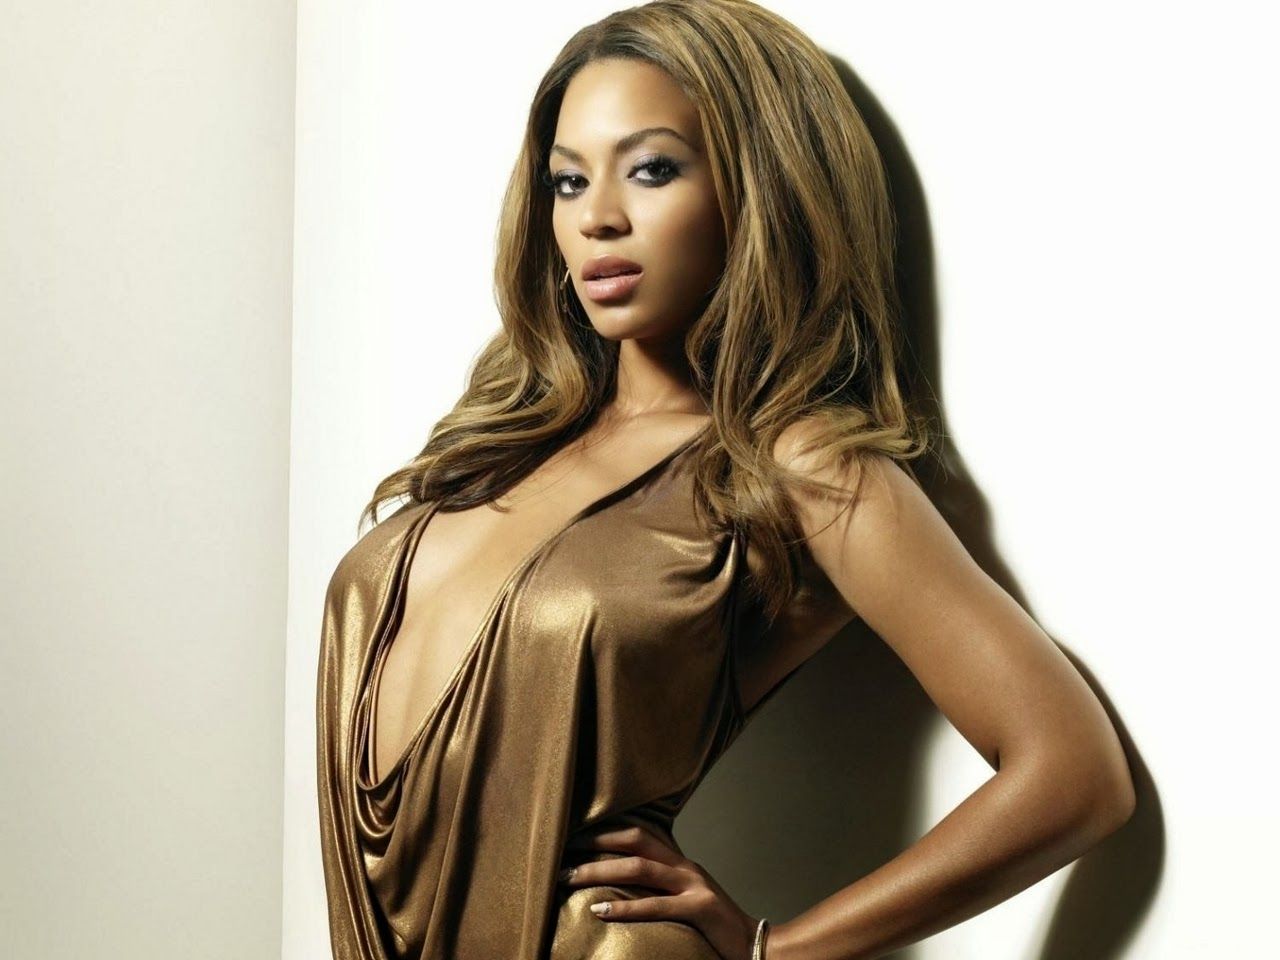 Beyonce Giselle Knowles Hd Wallpapers | HD Wallpapers